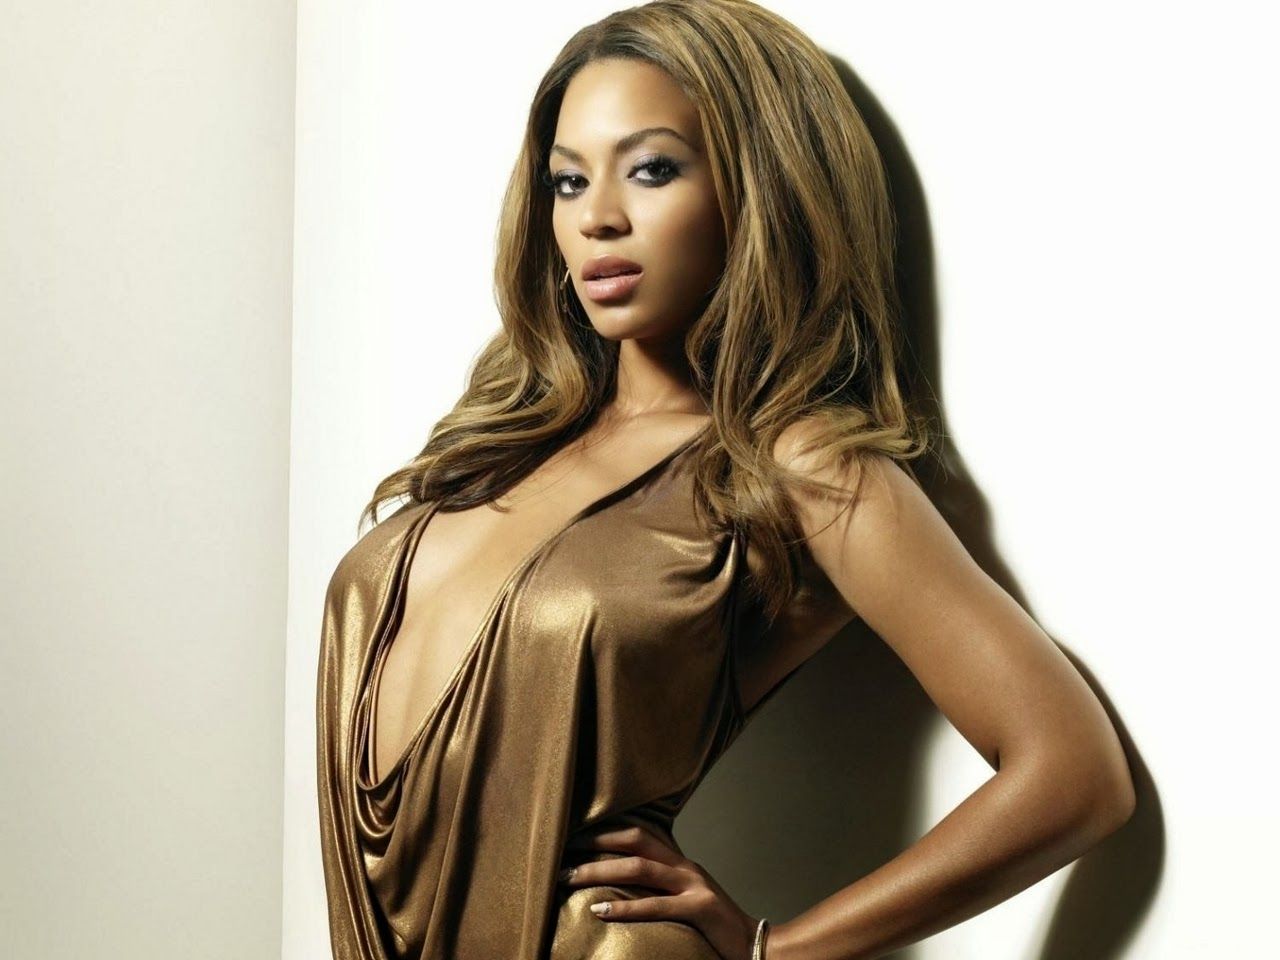 Beyonce Giselle Knowles Hd Wallpapers | HD Wallpapers